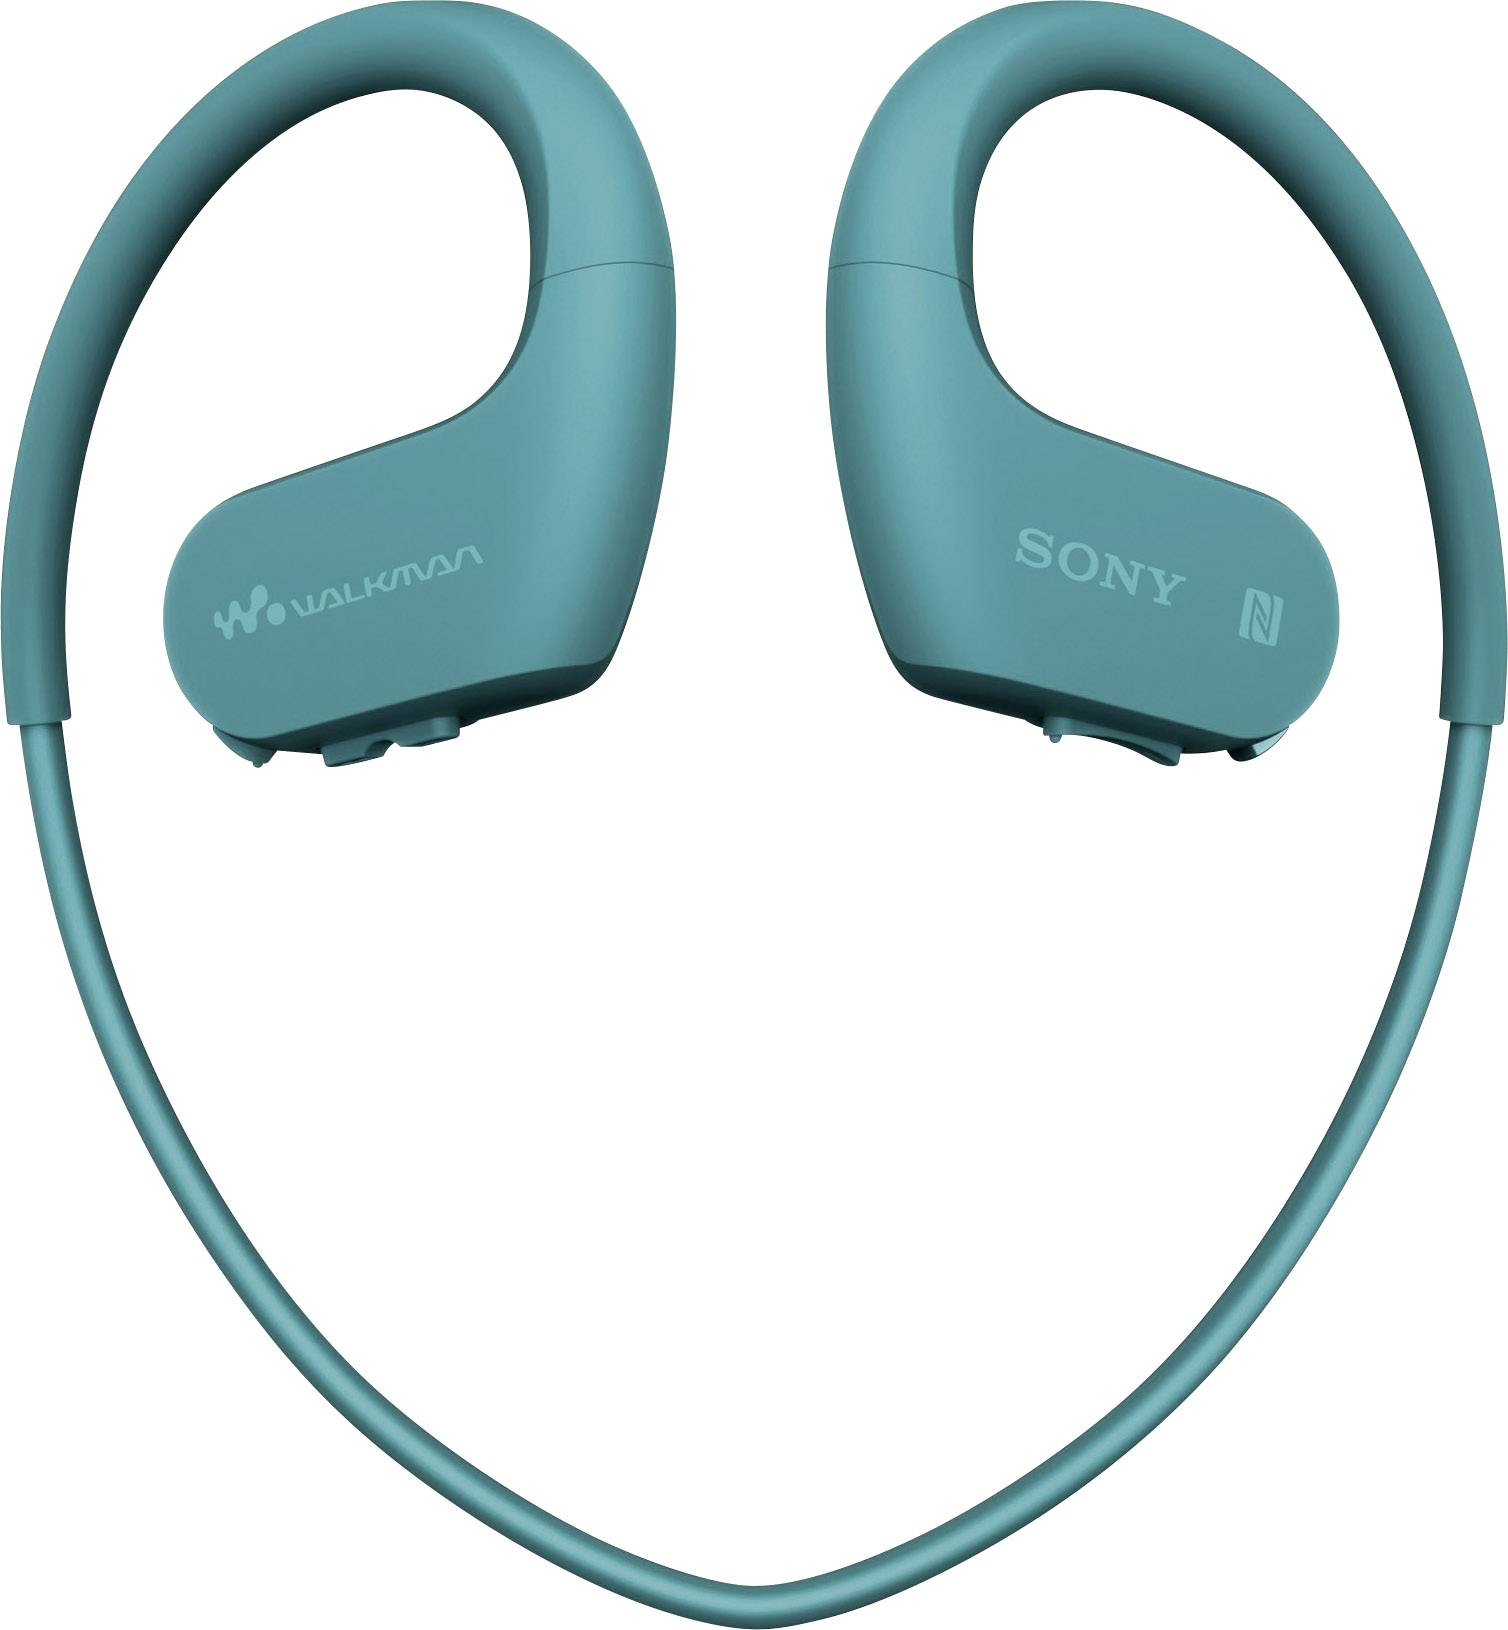 Sony NW-WS623 Bluetooth® (1075101) Sports Headphones In-ear